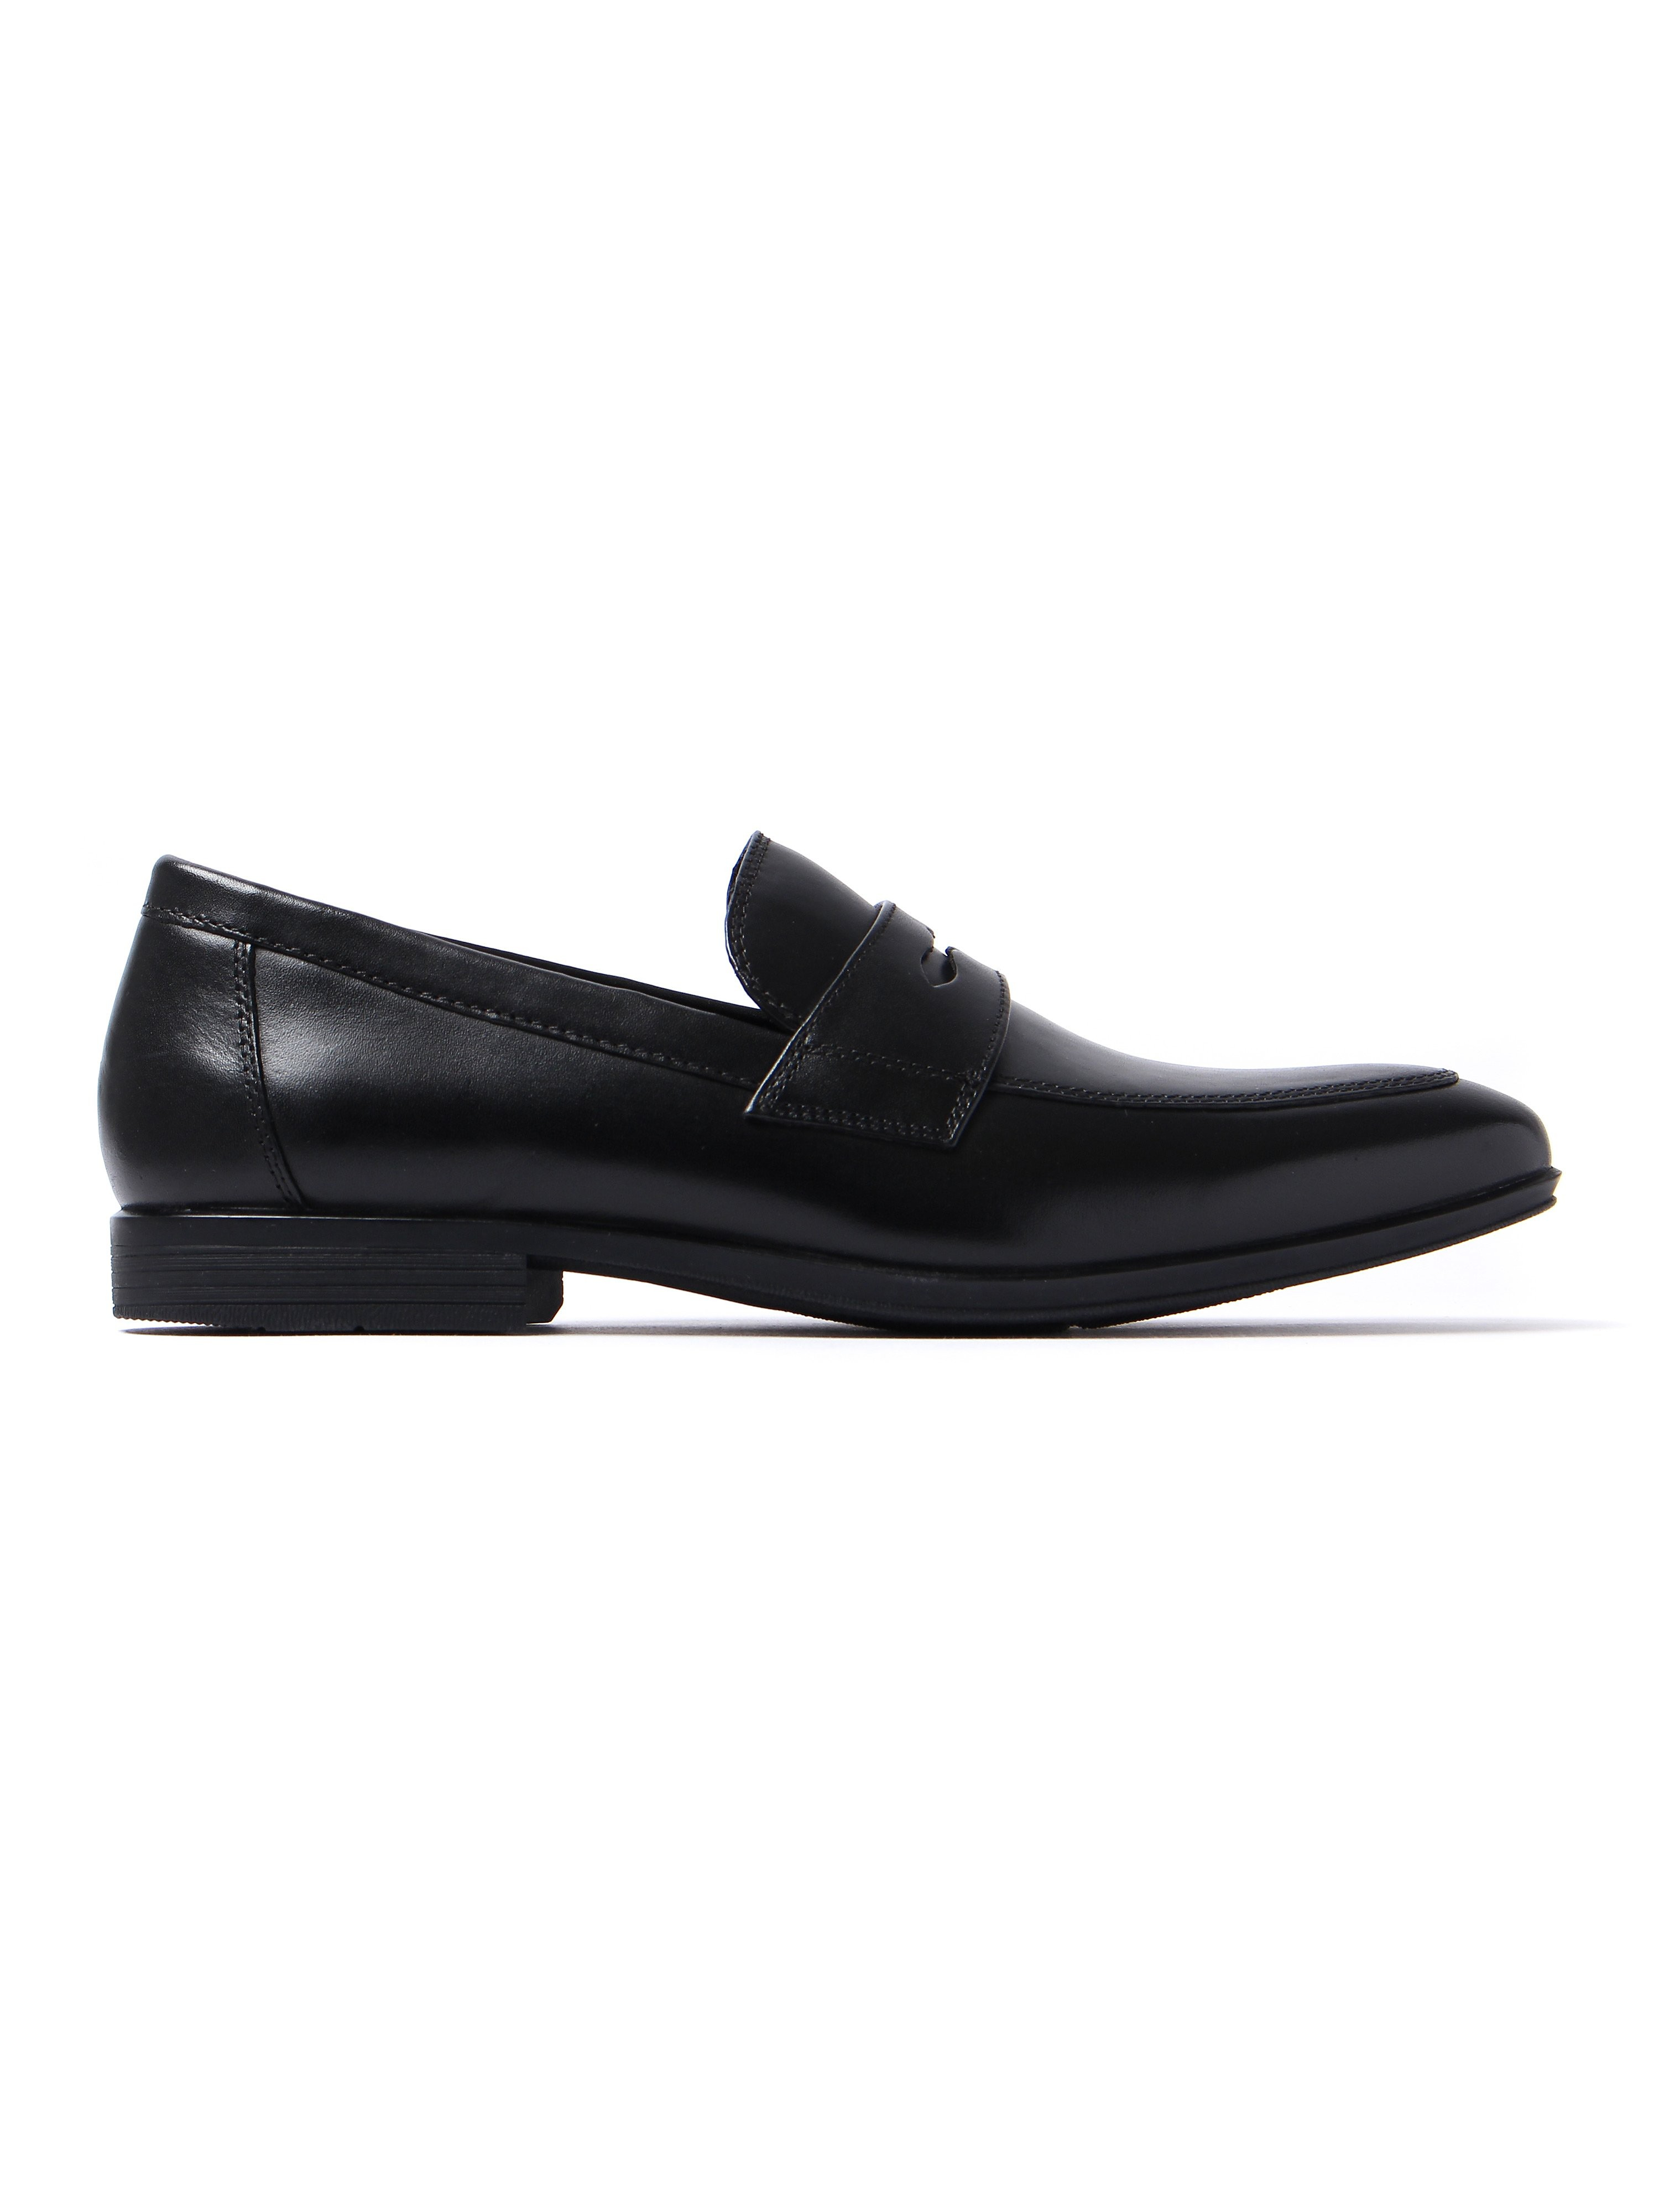 Rockport Men's Style Connected Penny Loafers - Black